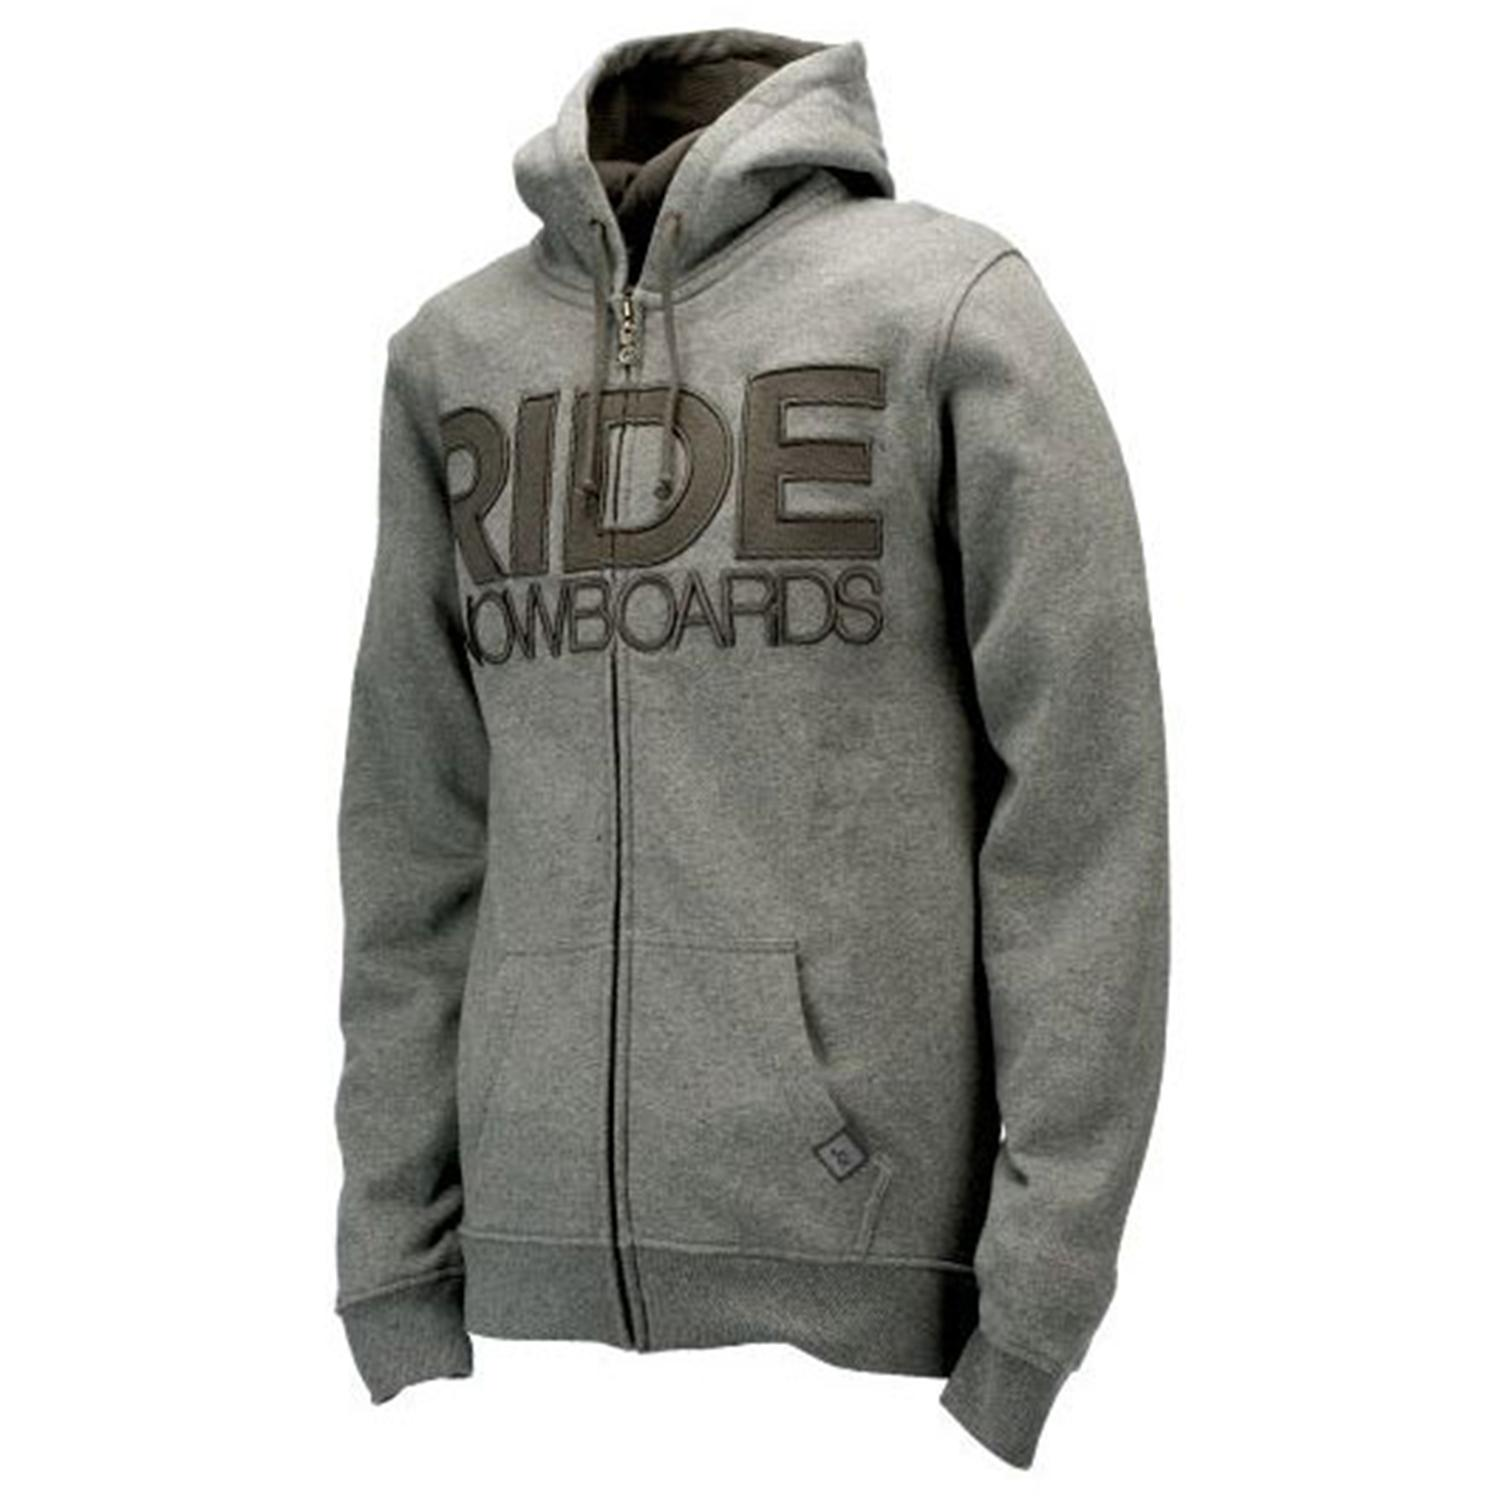 Ride Heathered Zip Hoodie | evo outlet